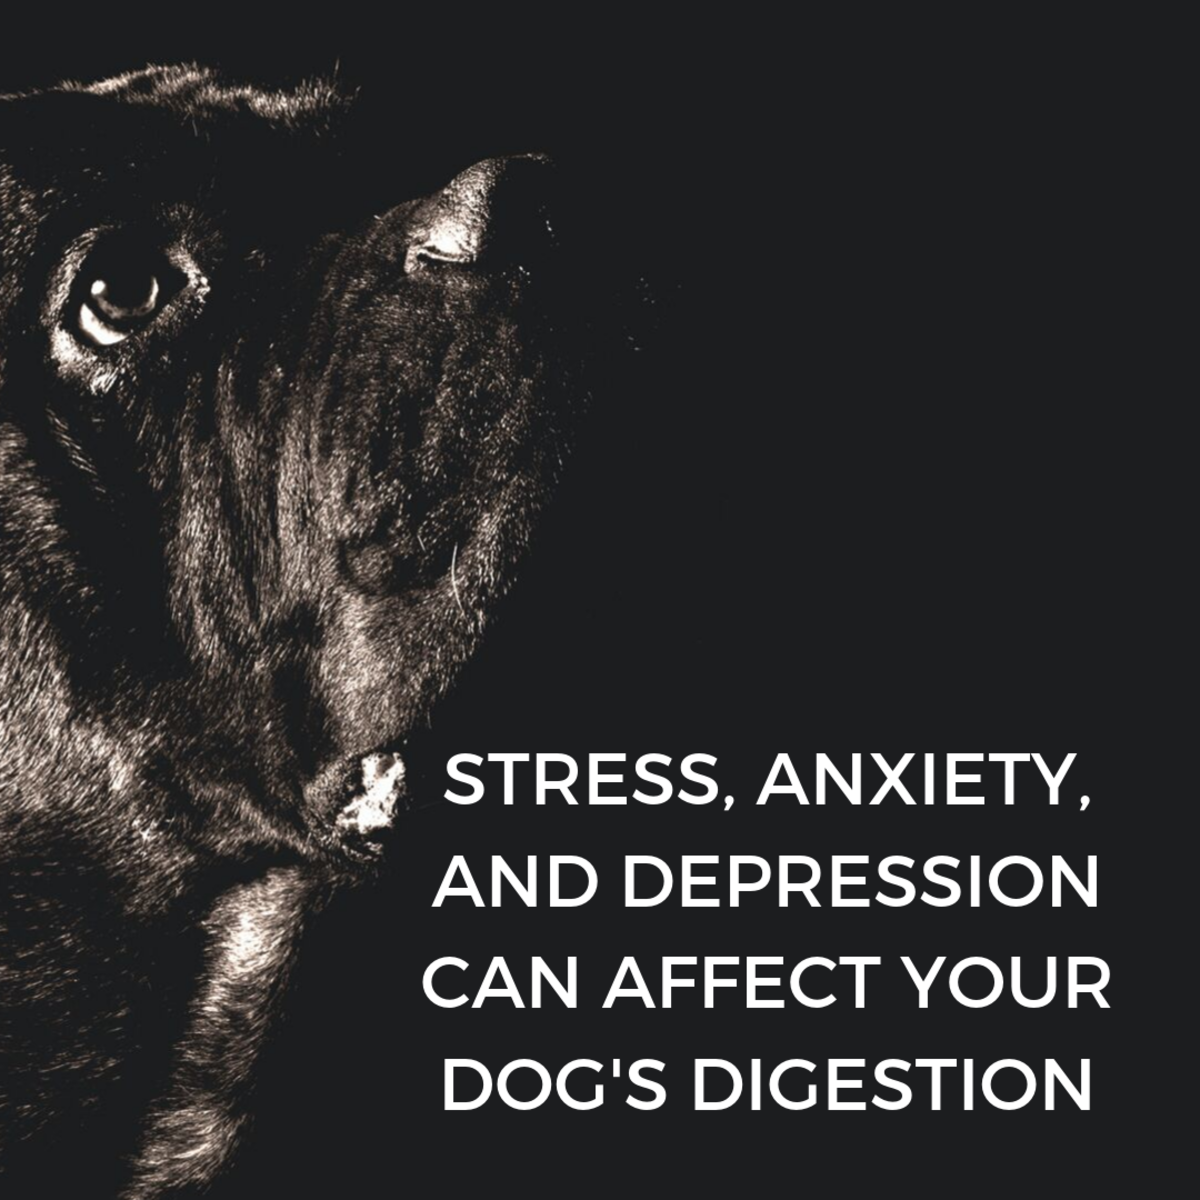 Many factors can influence your dog's well-being.